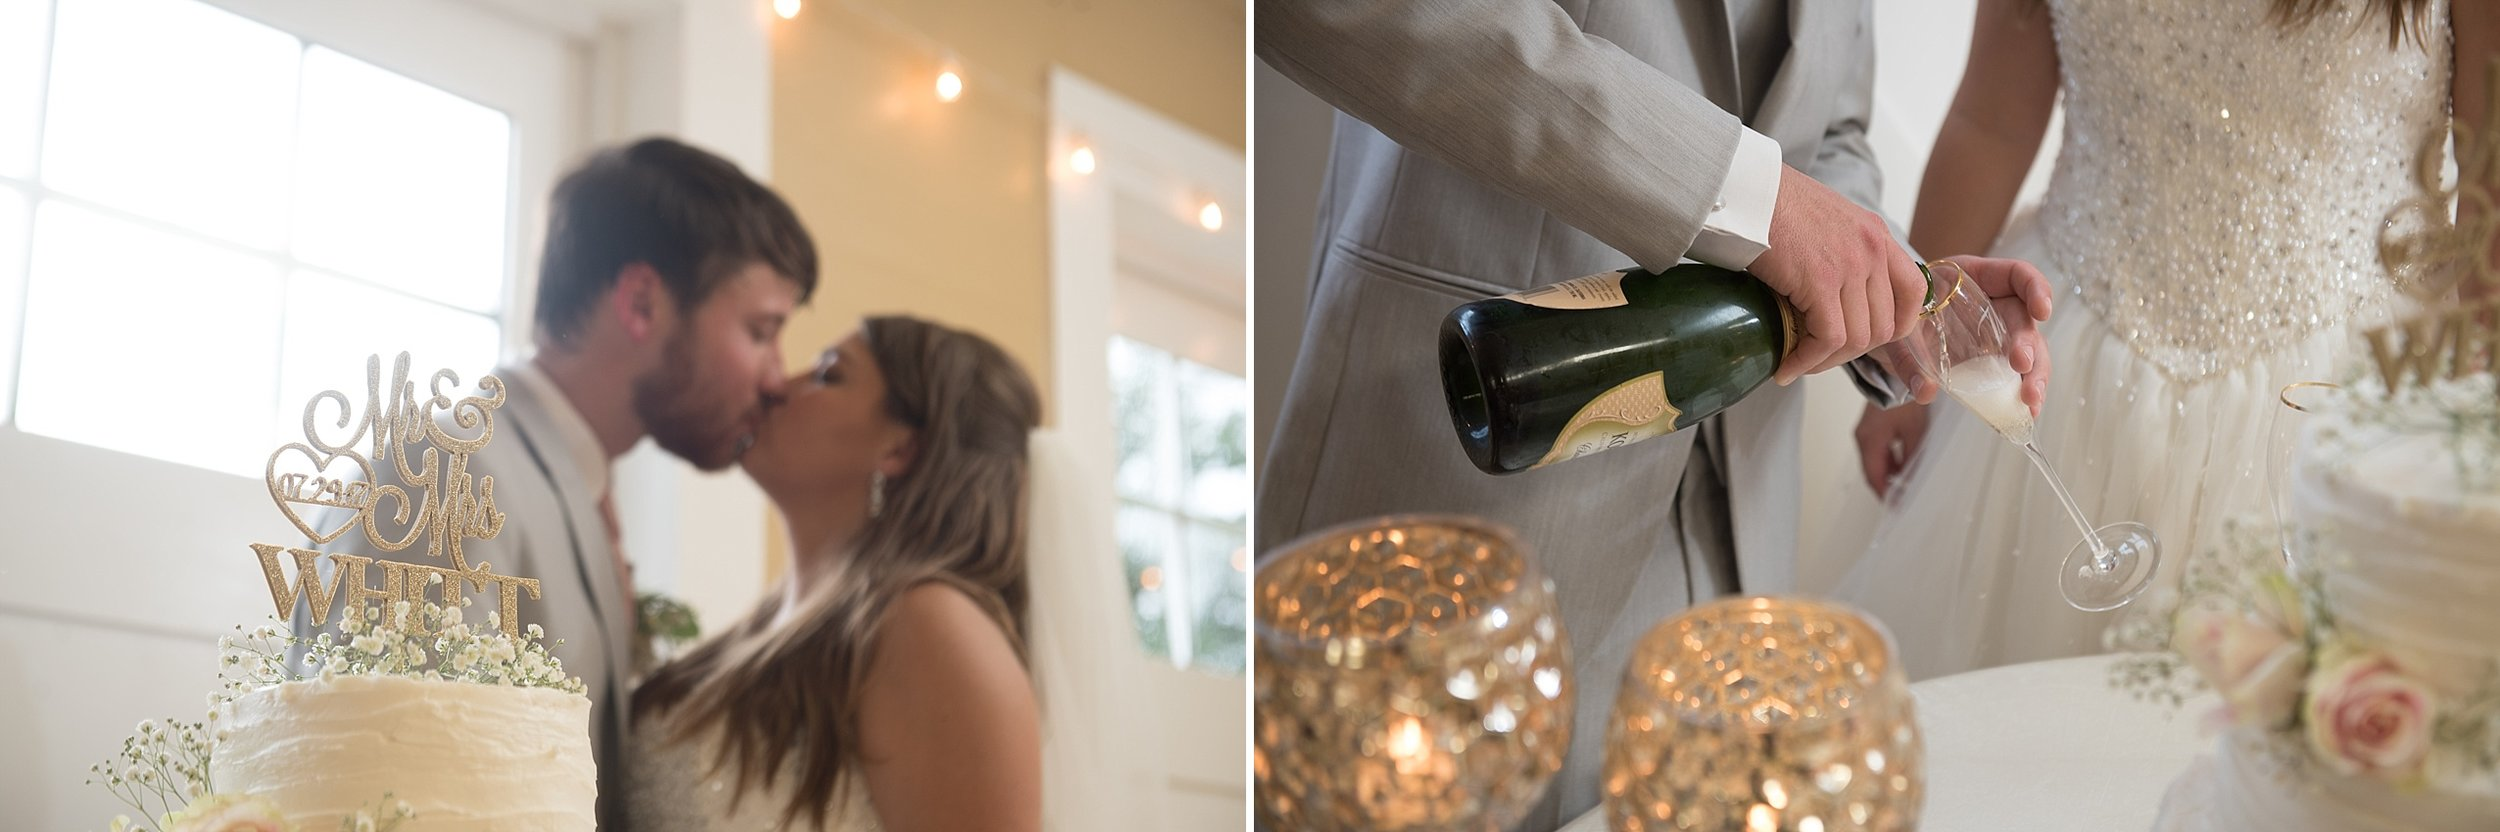 groom pours champagne for wedding toast